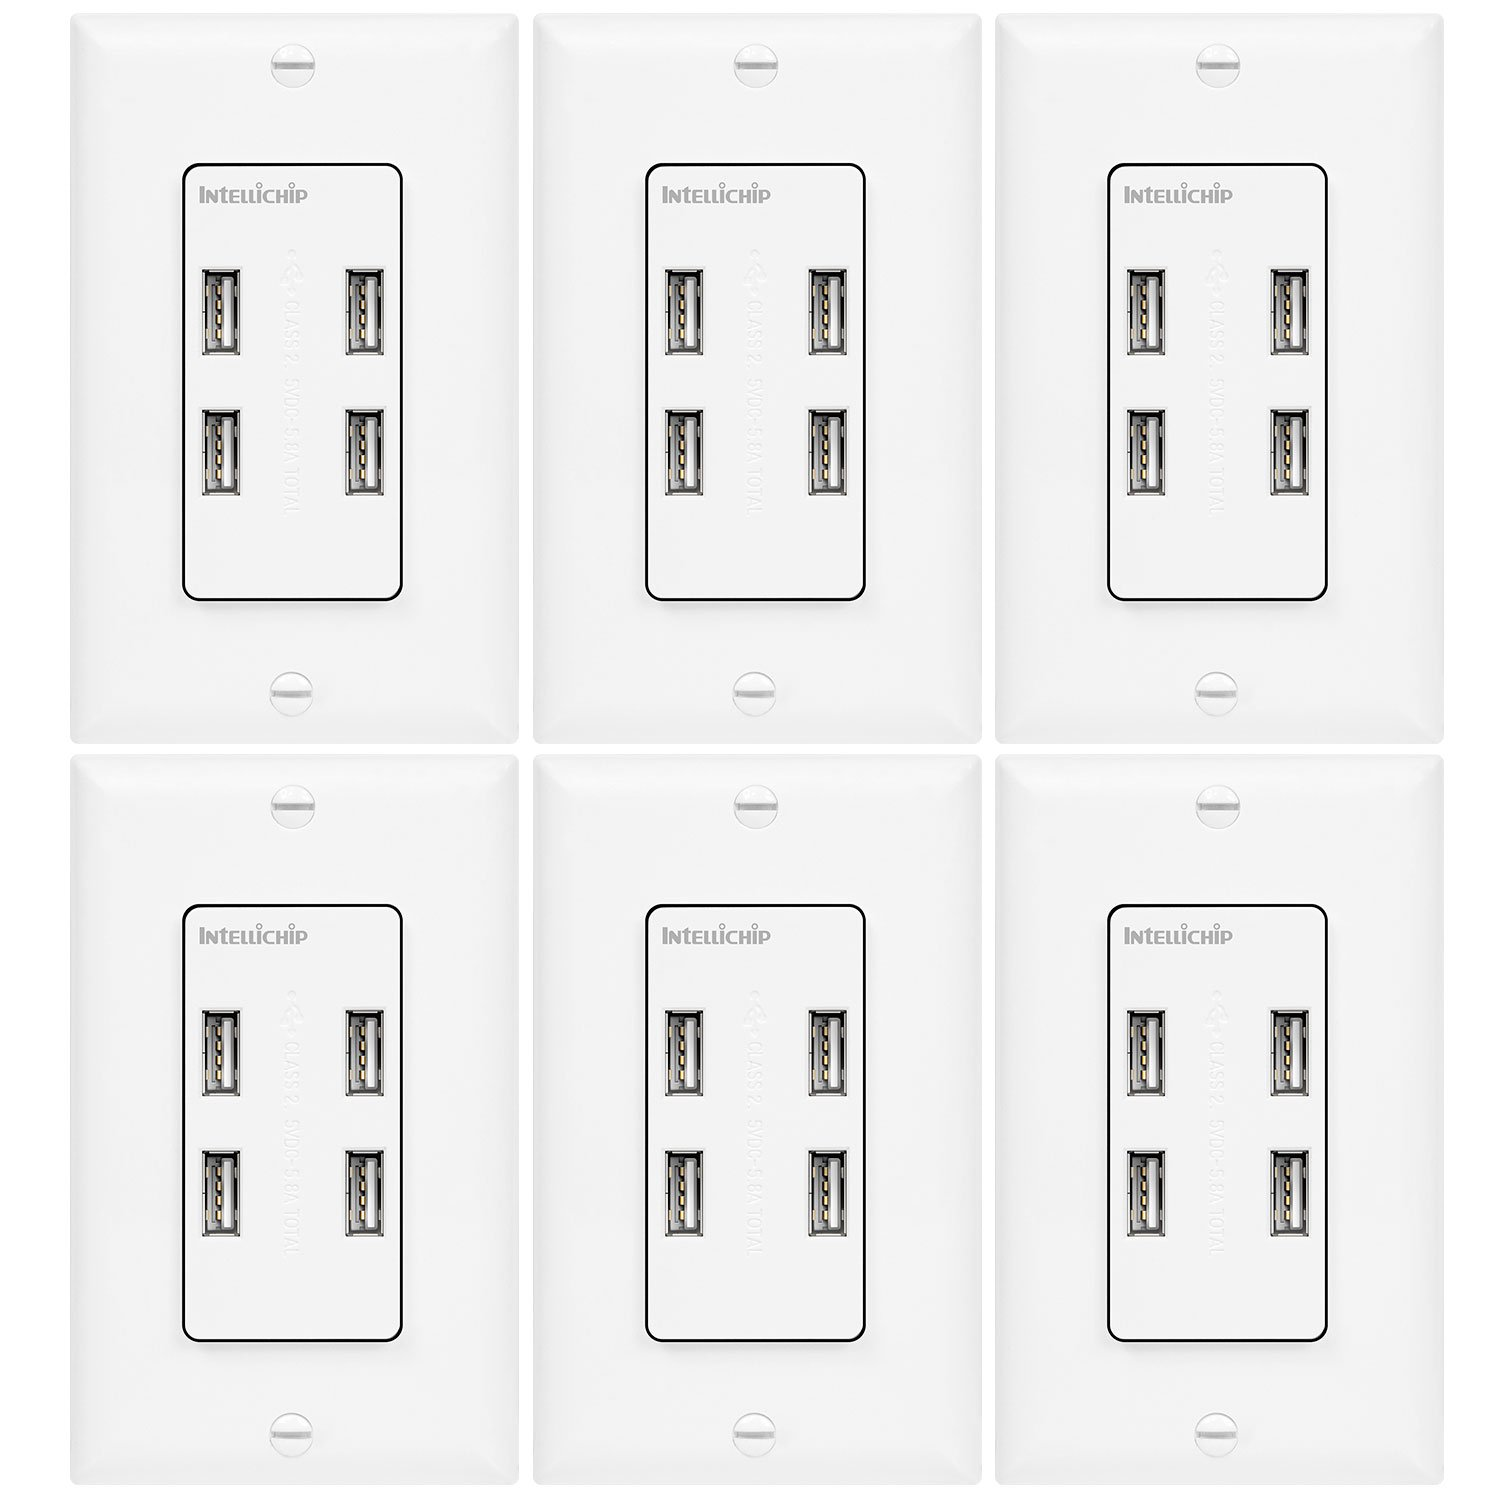 TOPGREENER 5.8A Ultra High Speed USB Quad 4-Port Wall Outlet, Compatible with iPhone XS/MAX/XR/X/8/7, Samsung Galaxy S9/S8/S7, LG Nexus, HTC 10 & More Smartphones, UL Listed, TU458A, 6 Pack by TOPGREENER